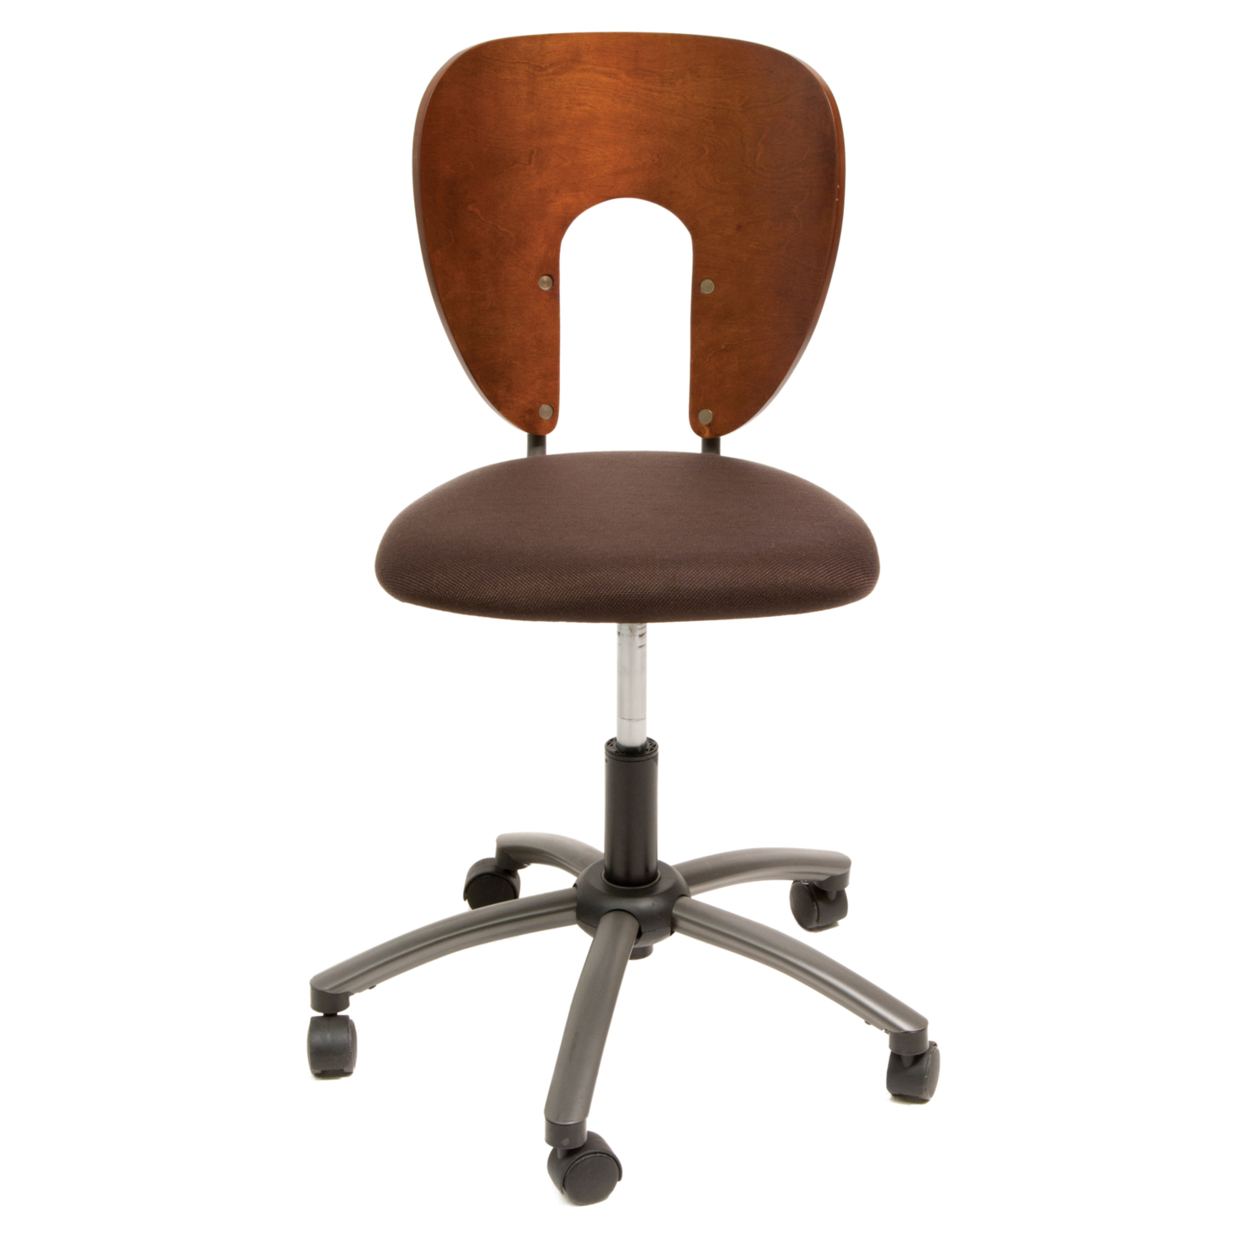 Offex Home Office Ponderosa Chair Sonoma - Brown offex home office plinth ottoman latte